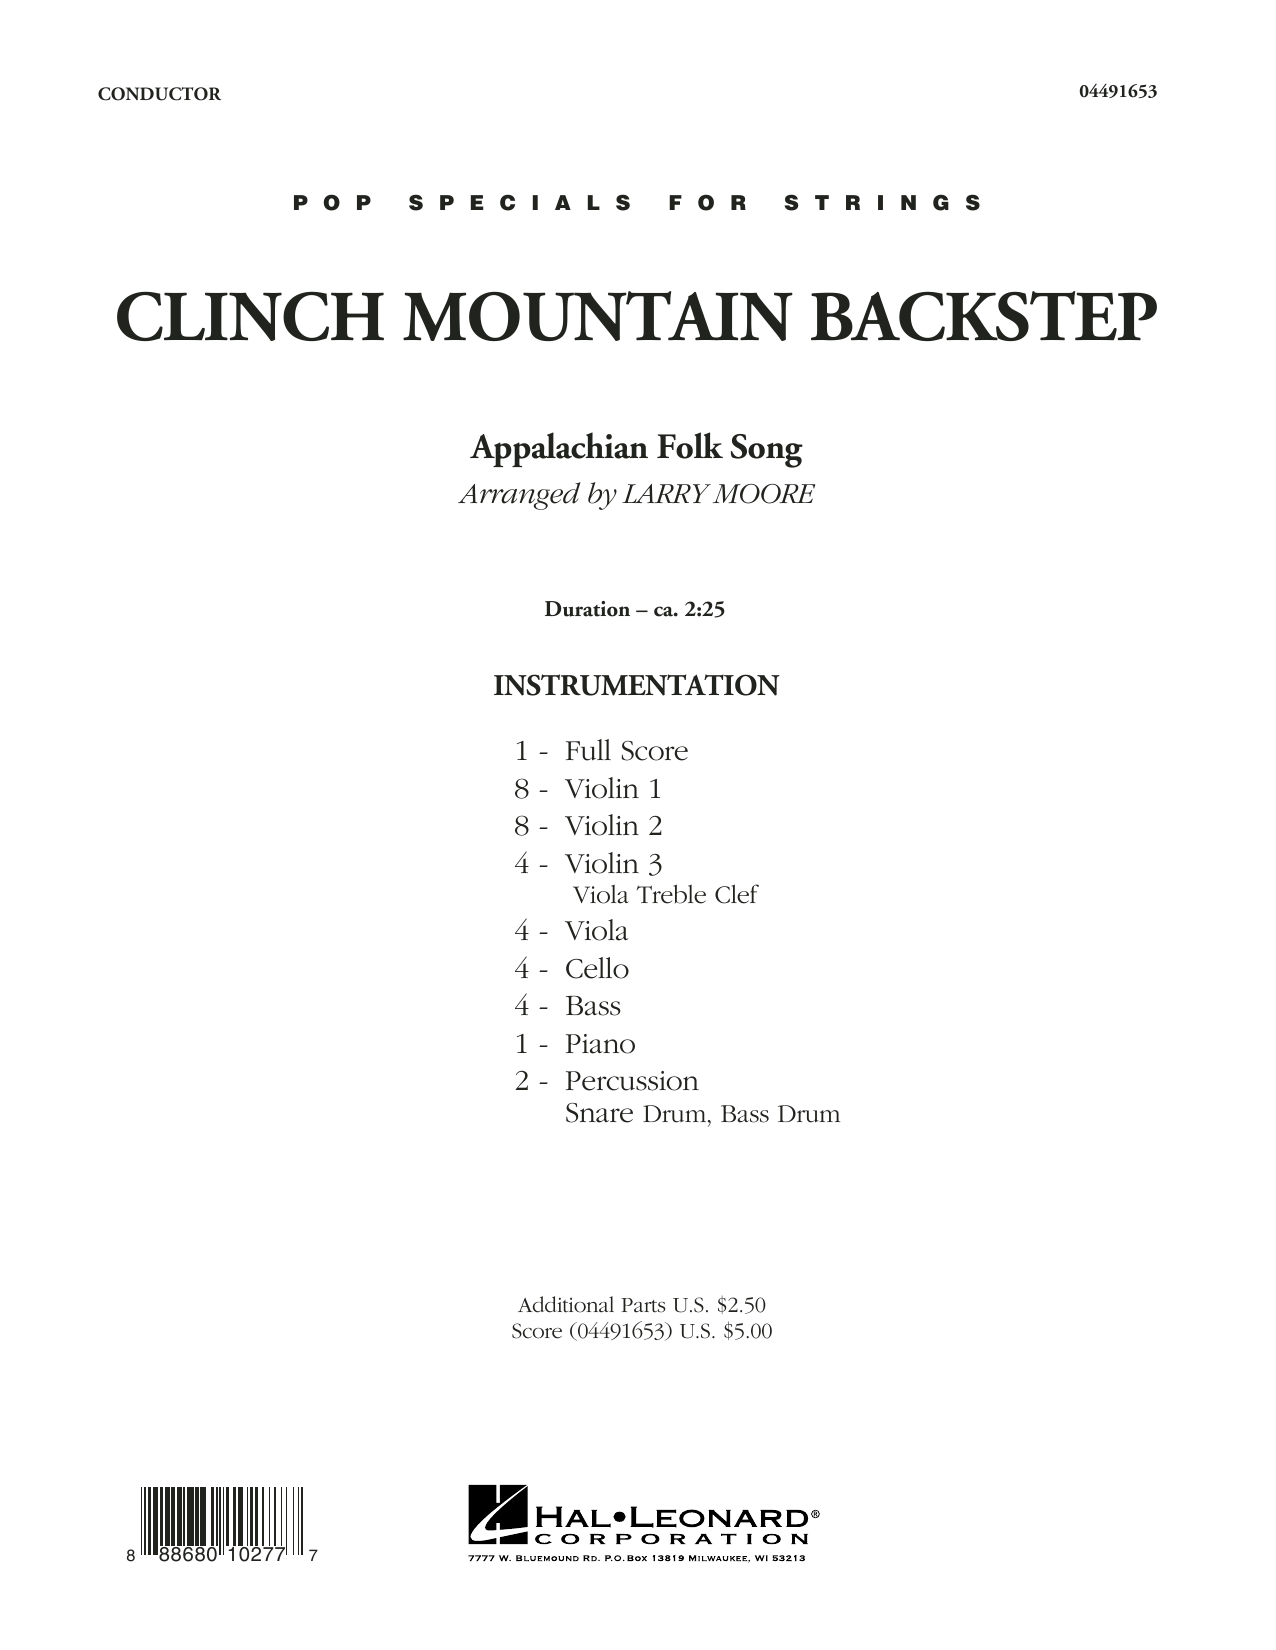 Clinch Mountain Backstep (COMPLETE) sheet music for orchestra by Larry Moore and Appalachian Folk. Score Image Preview.